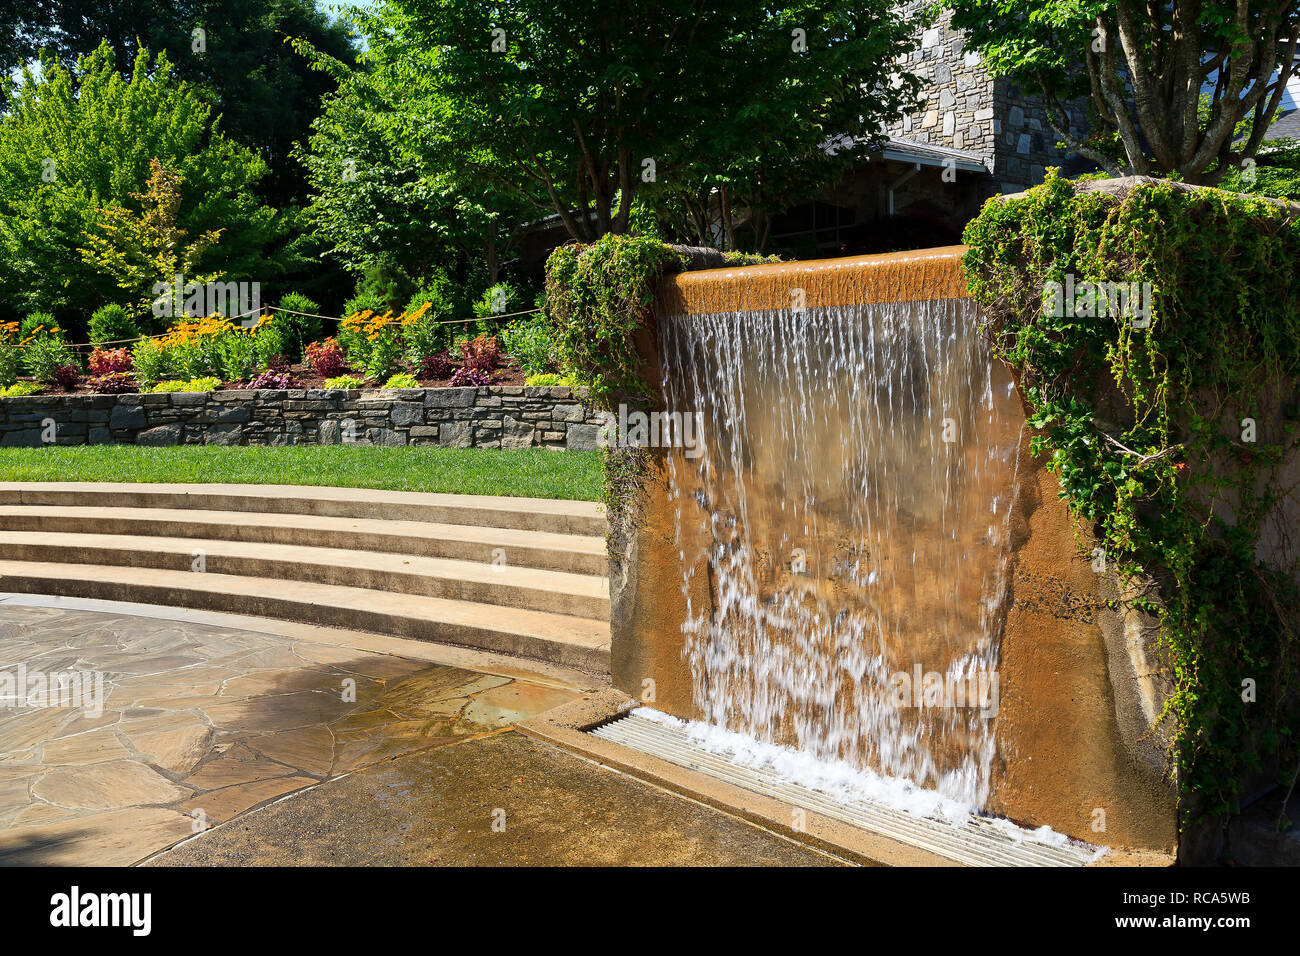 Water Fountain at North Carolina Arboretum in Asheville - Stock Image